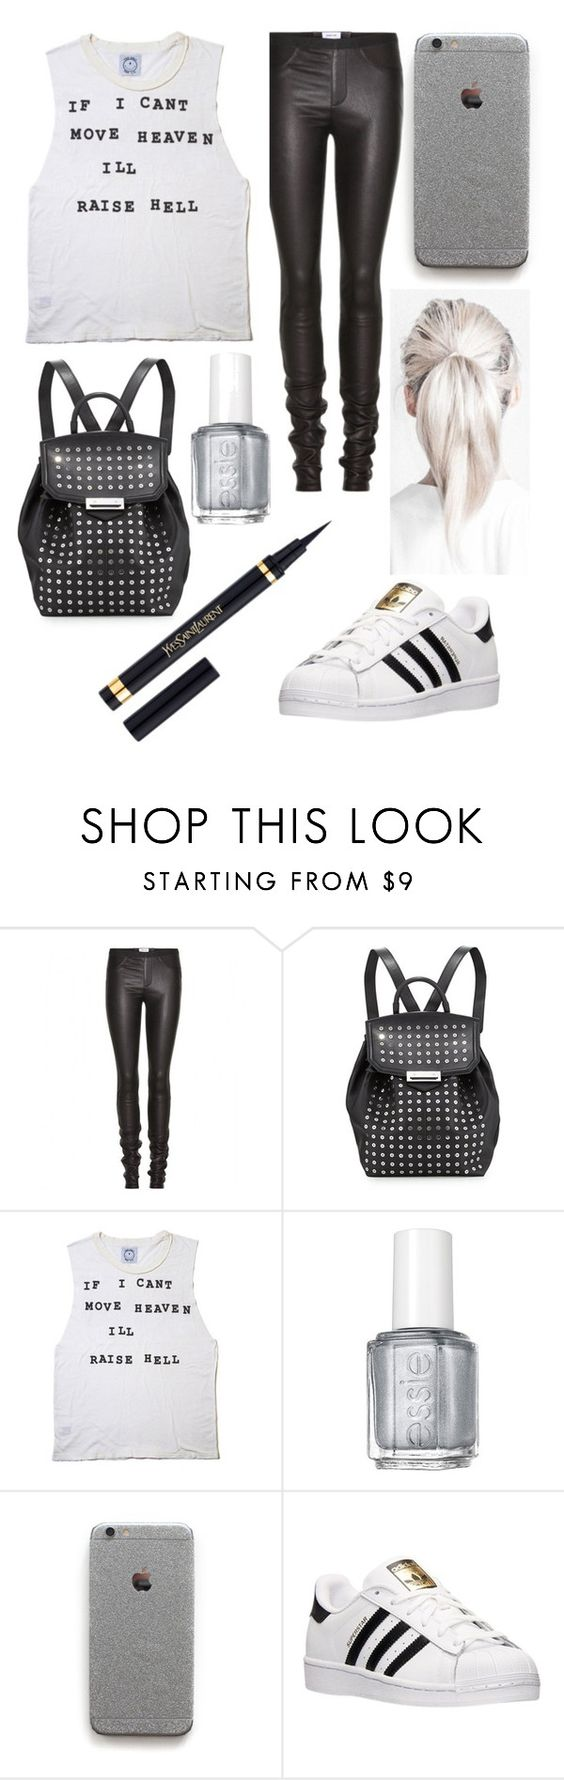 """""""Sebastian Morgenstern, The Mortal Instruments"""" by bellaa03114 ❤ liked on Polyvore featuring Helmut Lang, Alexander Wang, Essie, adidas and Yves Saint Laurent"""